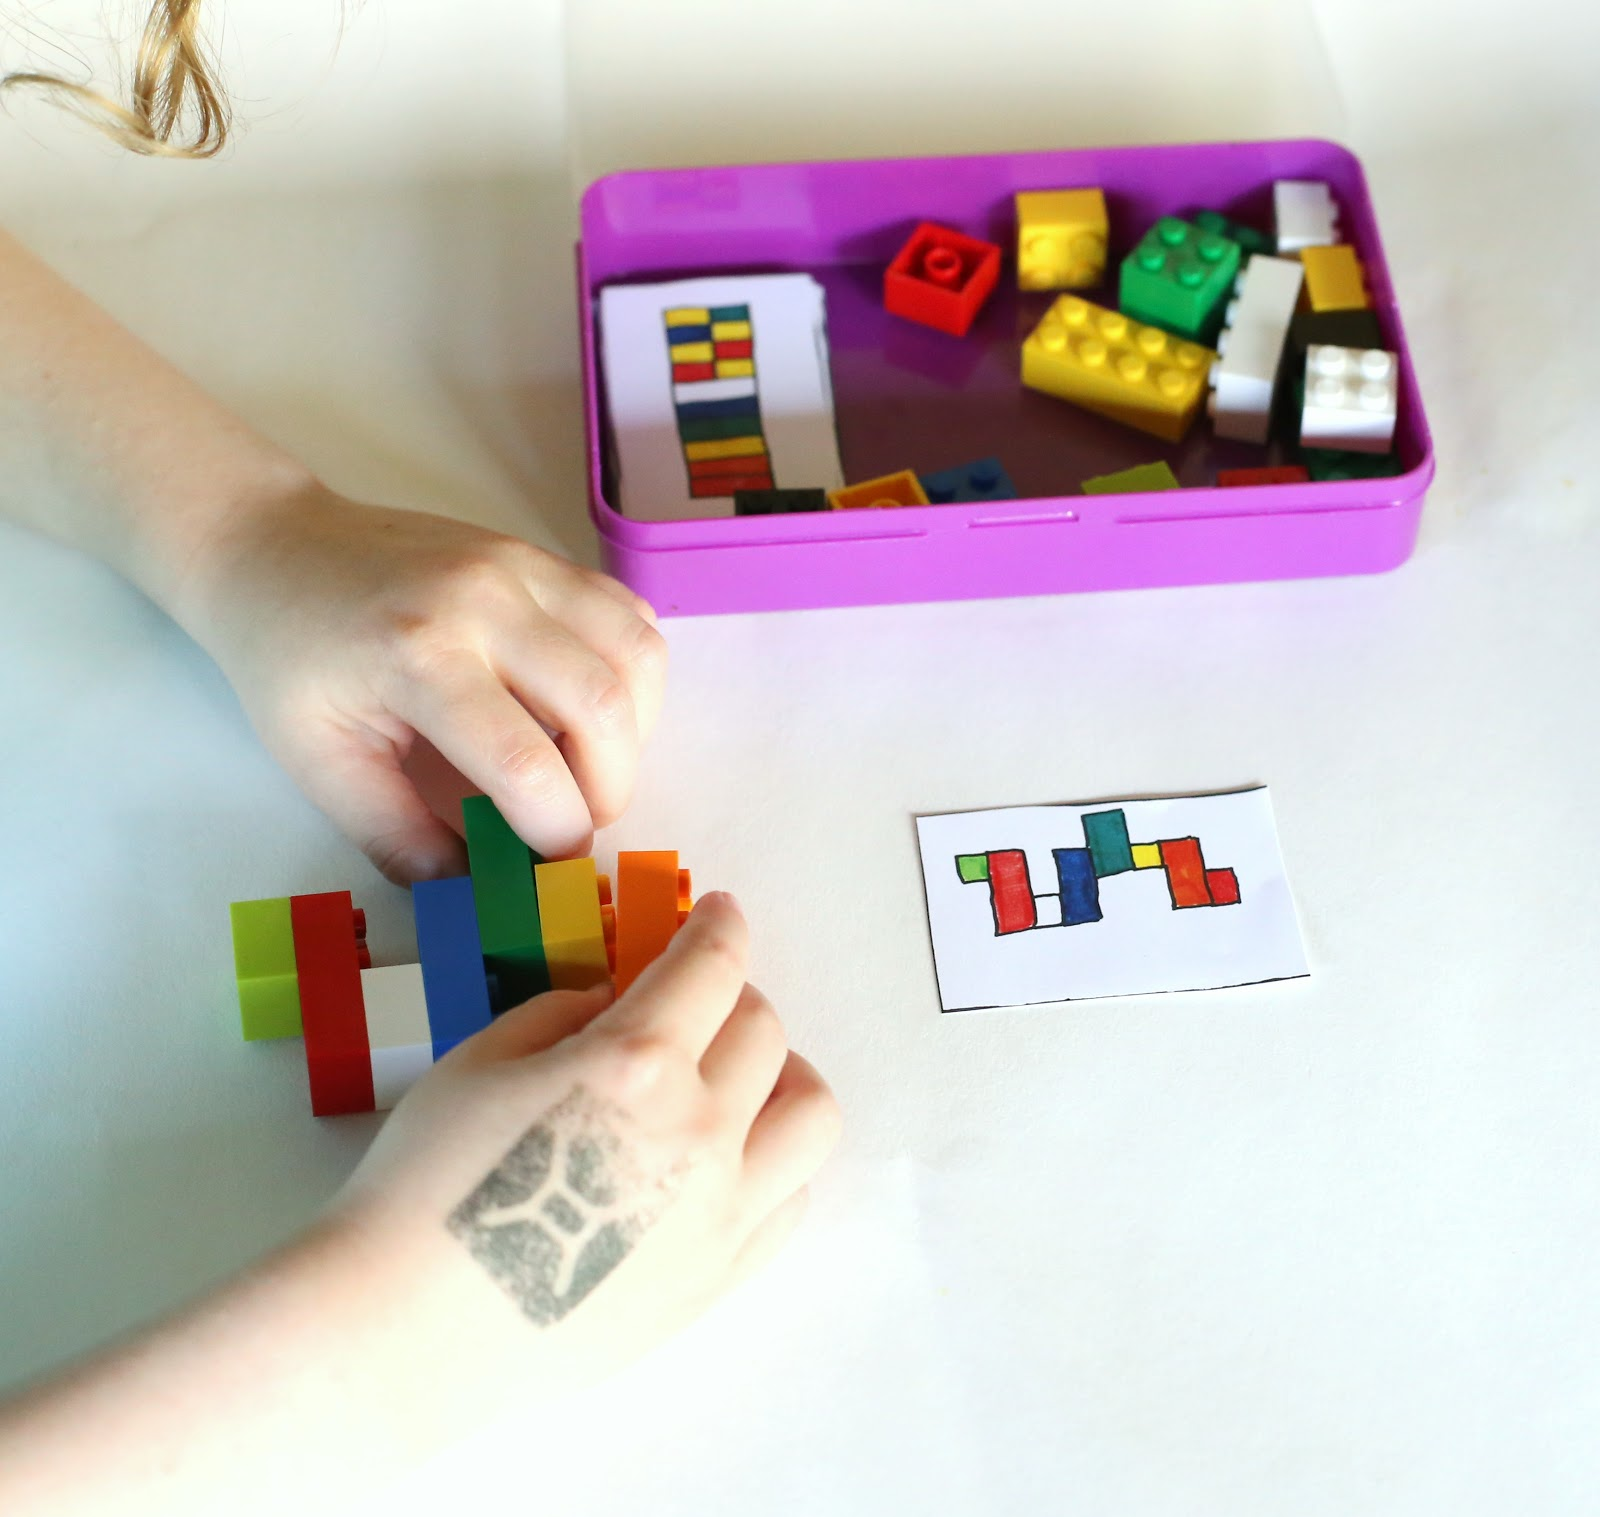 Kid playing with a portable lego kit